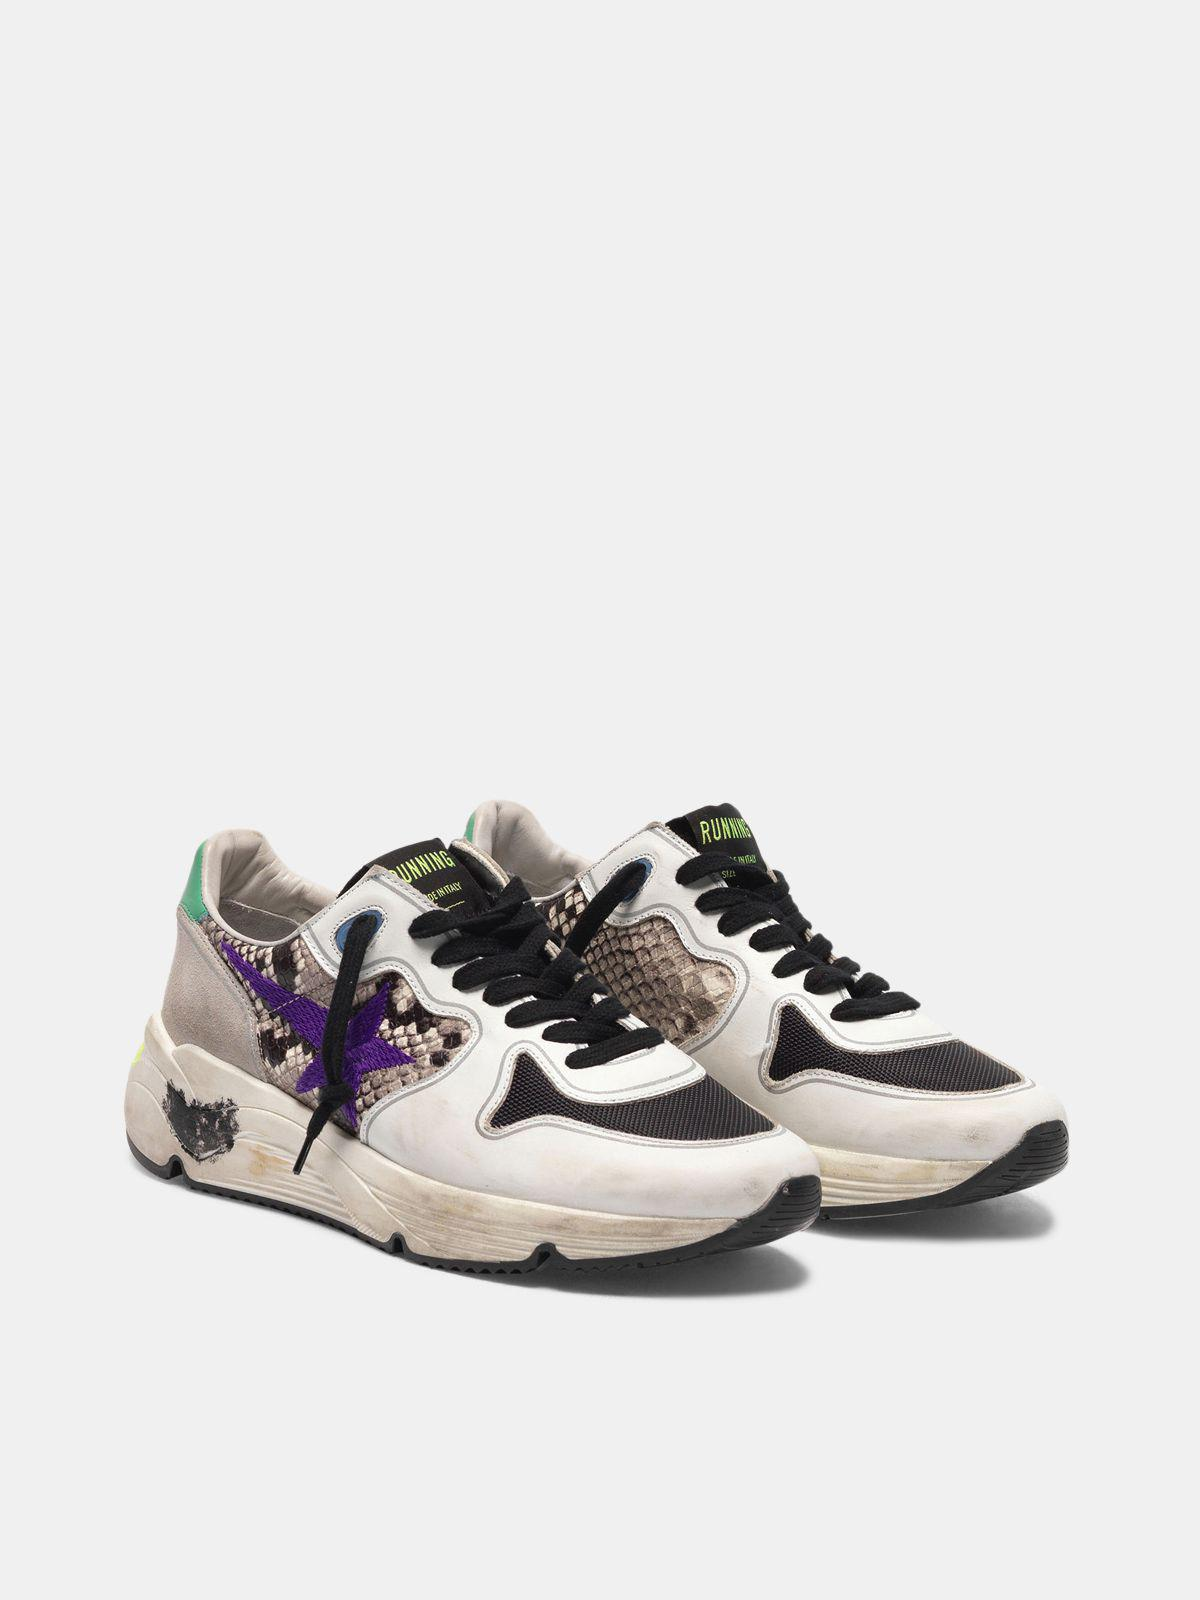 Running Sole sneakers in snakeskin print leather with purple embroidered star 2